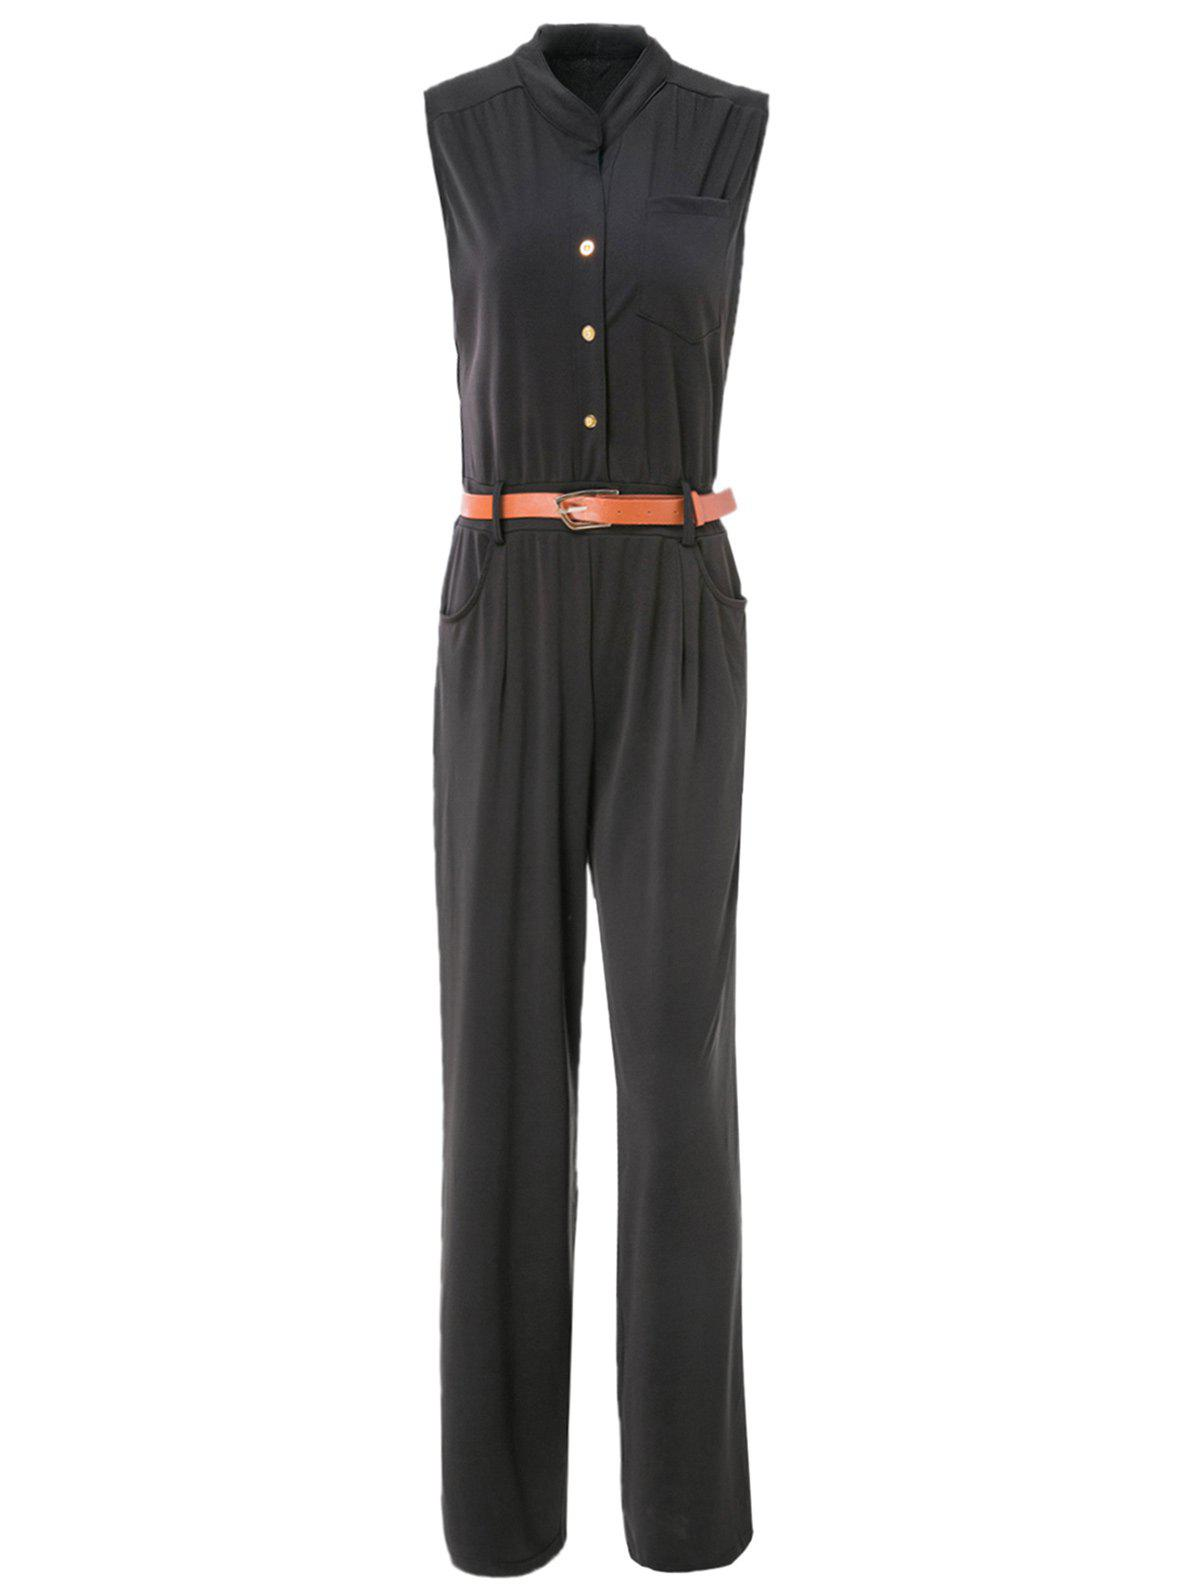 Elegant Women's Stand Collar Candy Color Sleeveless Jumpsuit - BLACK XL